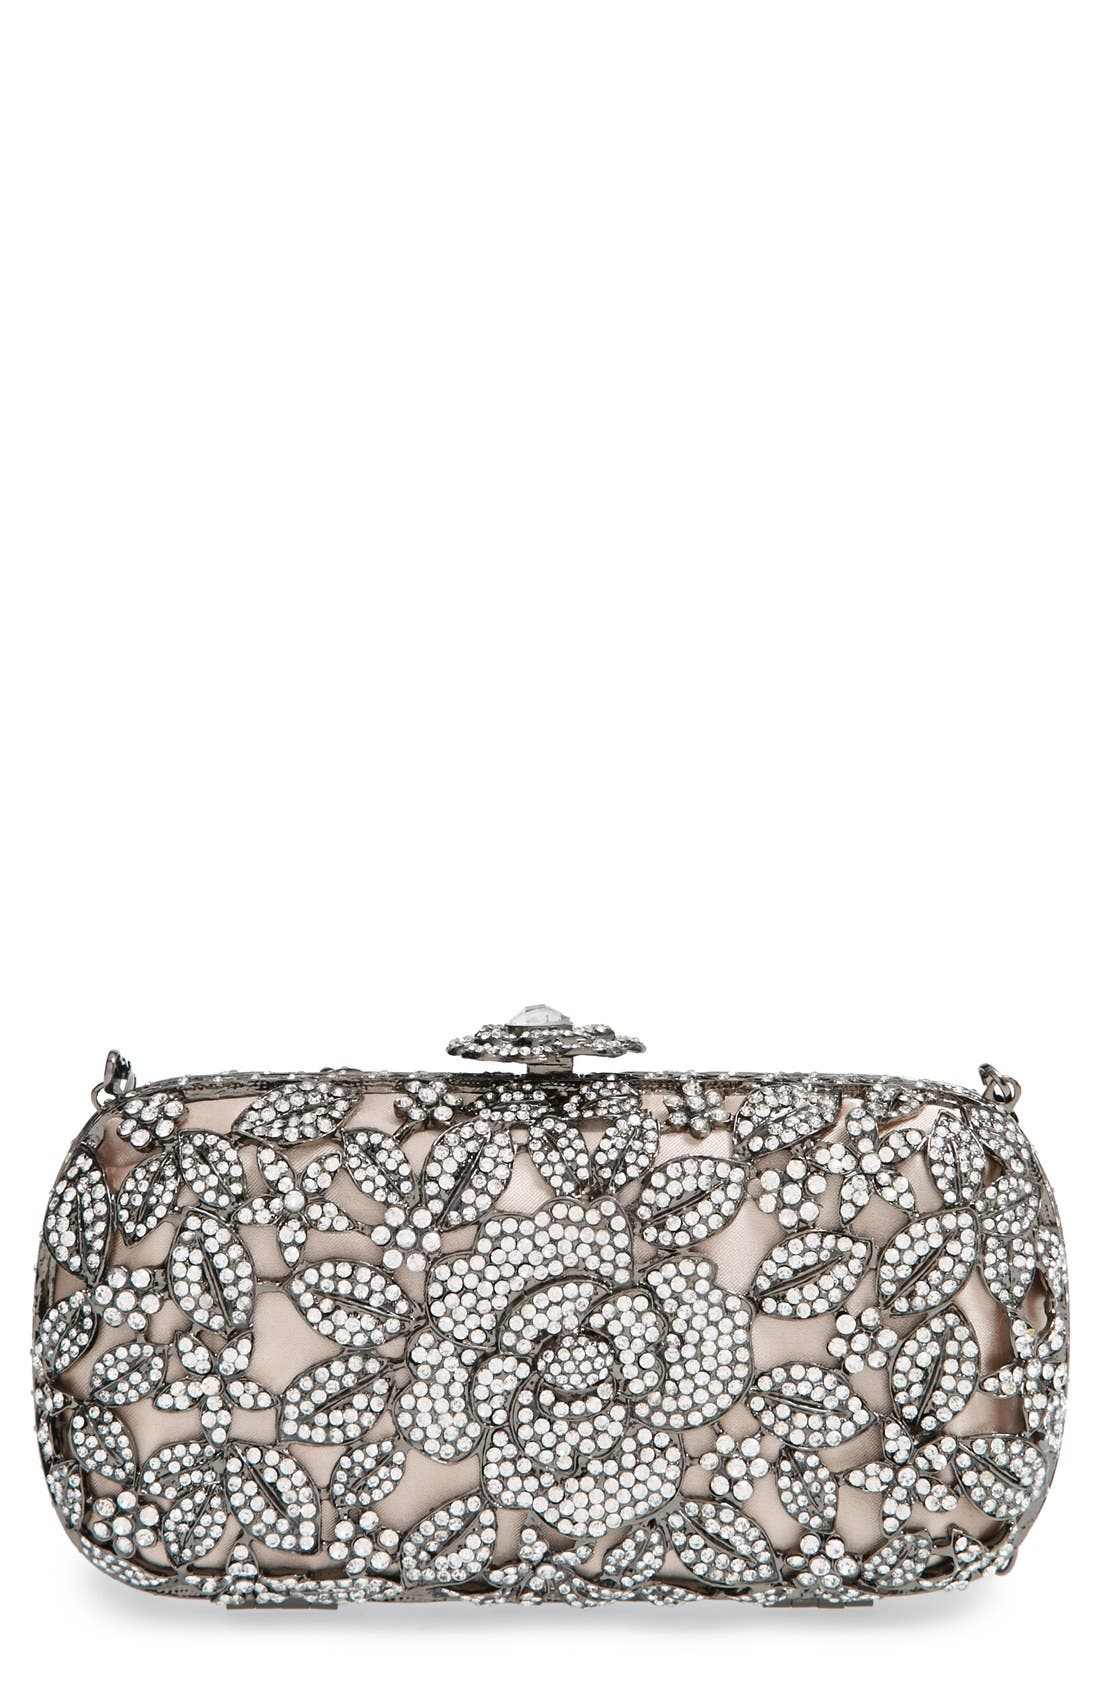 Main Image - Natasha Couture Crystal Caged Floral Clutch